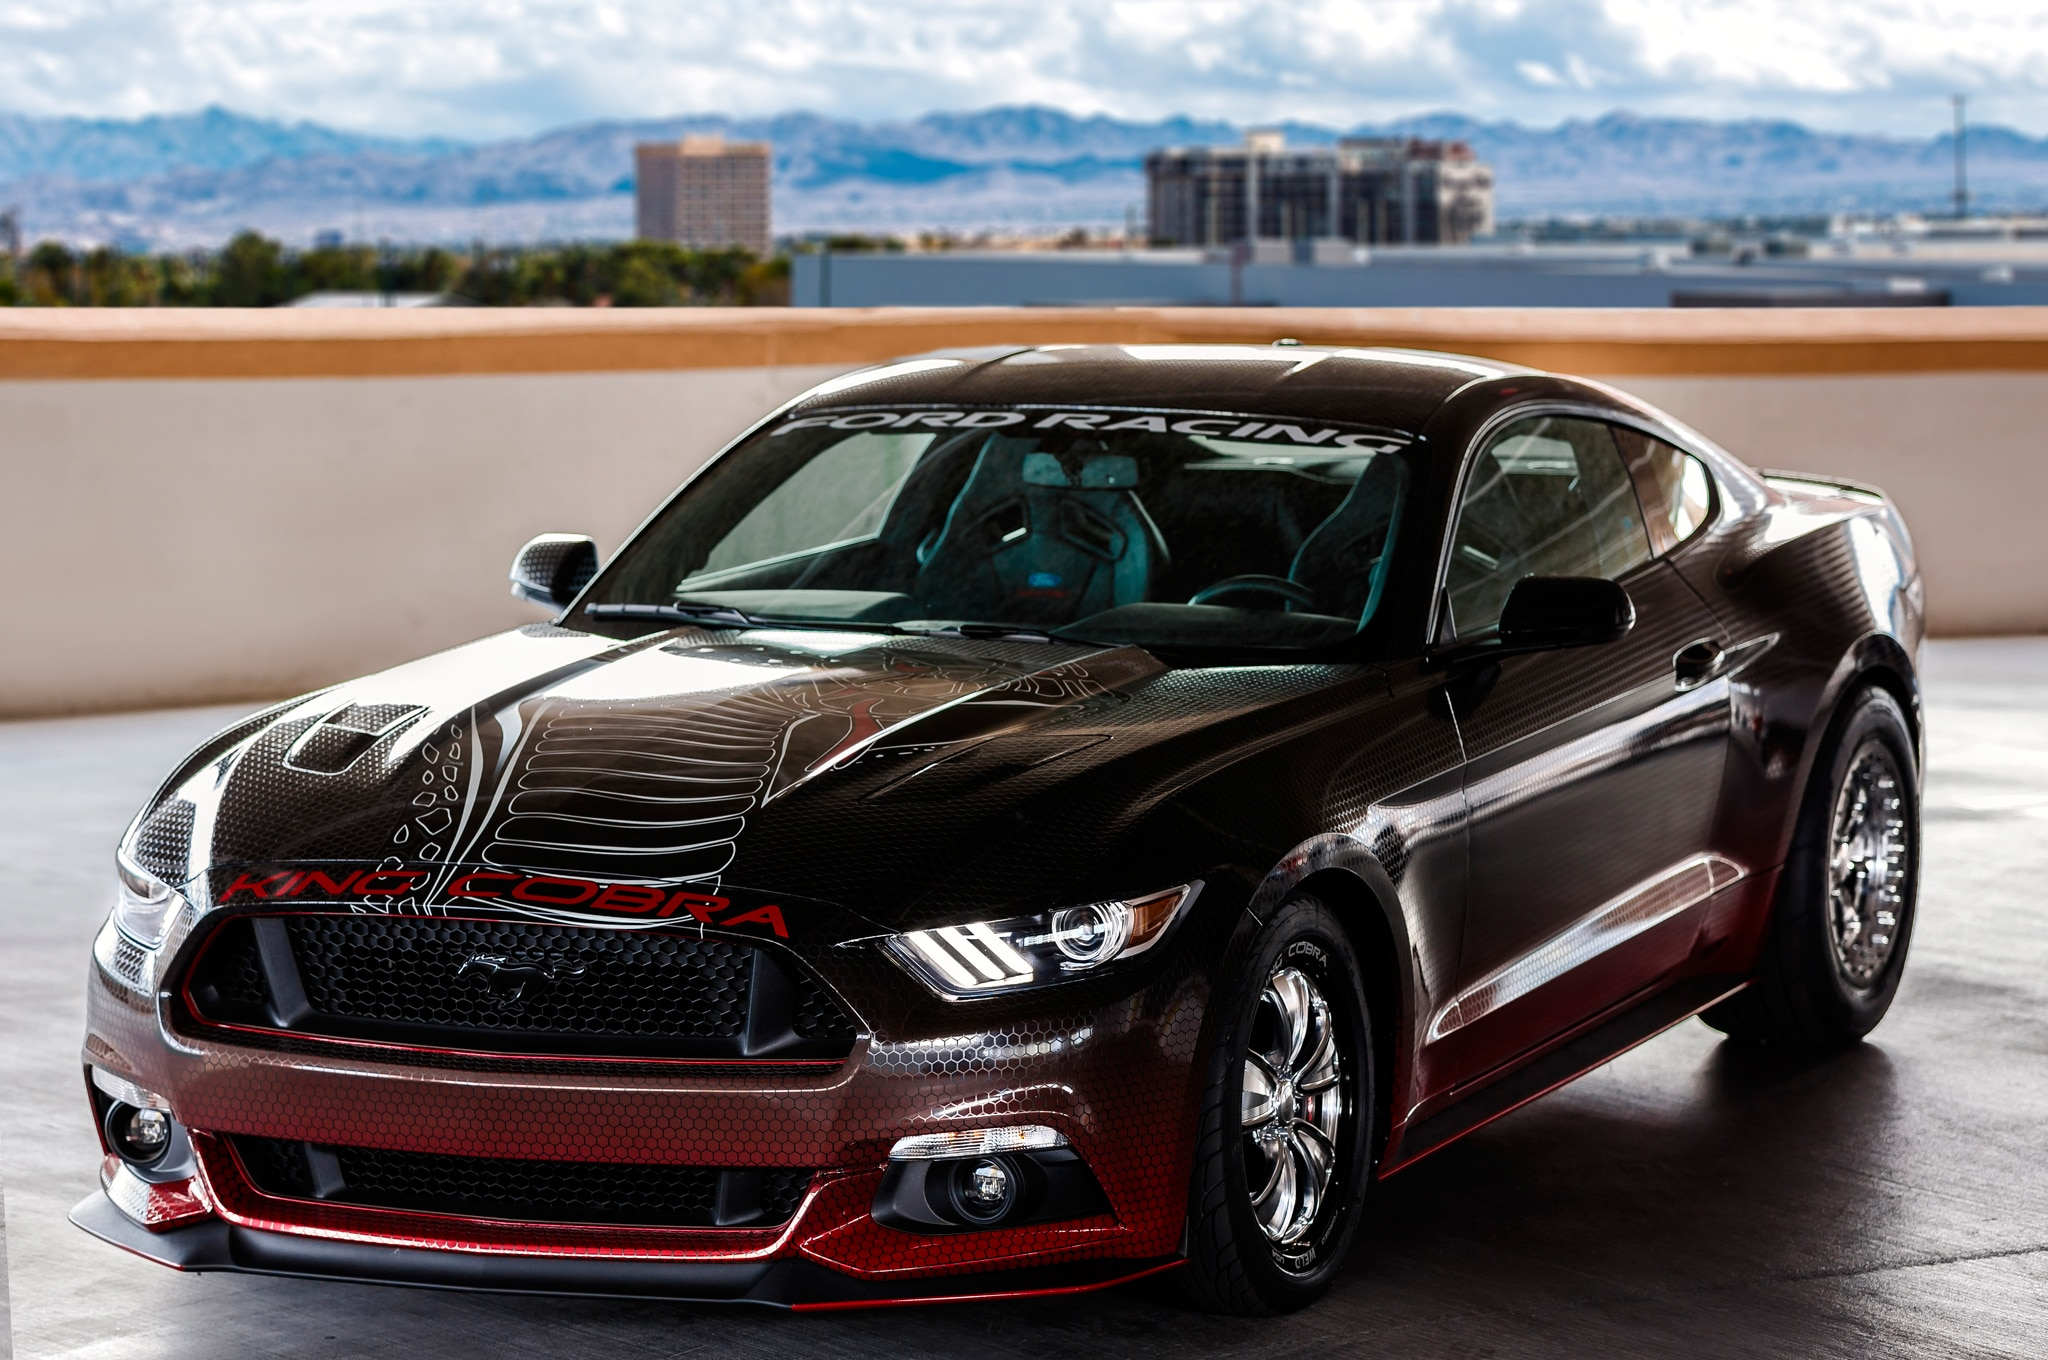 2015 Ford Mustang GT King Cobra. 13|250. 2015 Ford Mustang ...